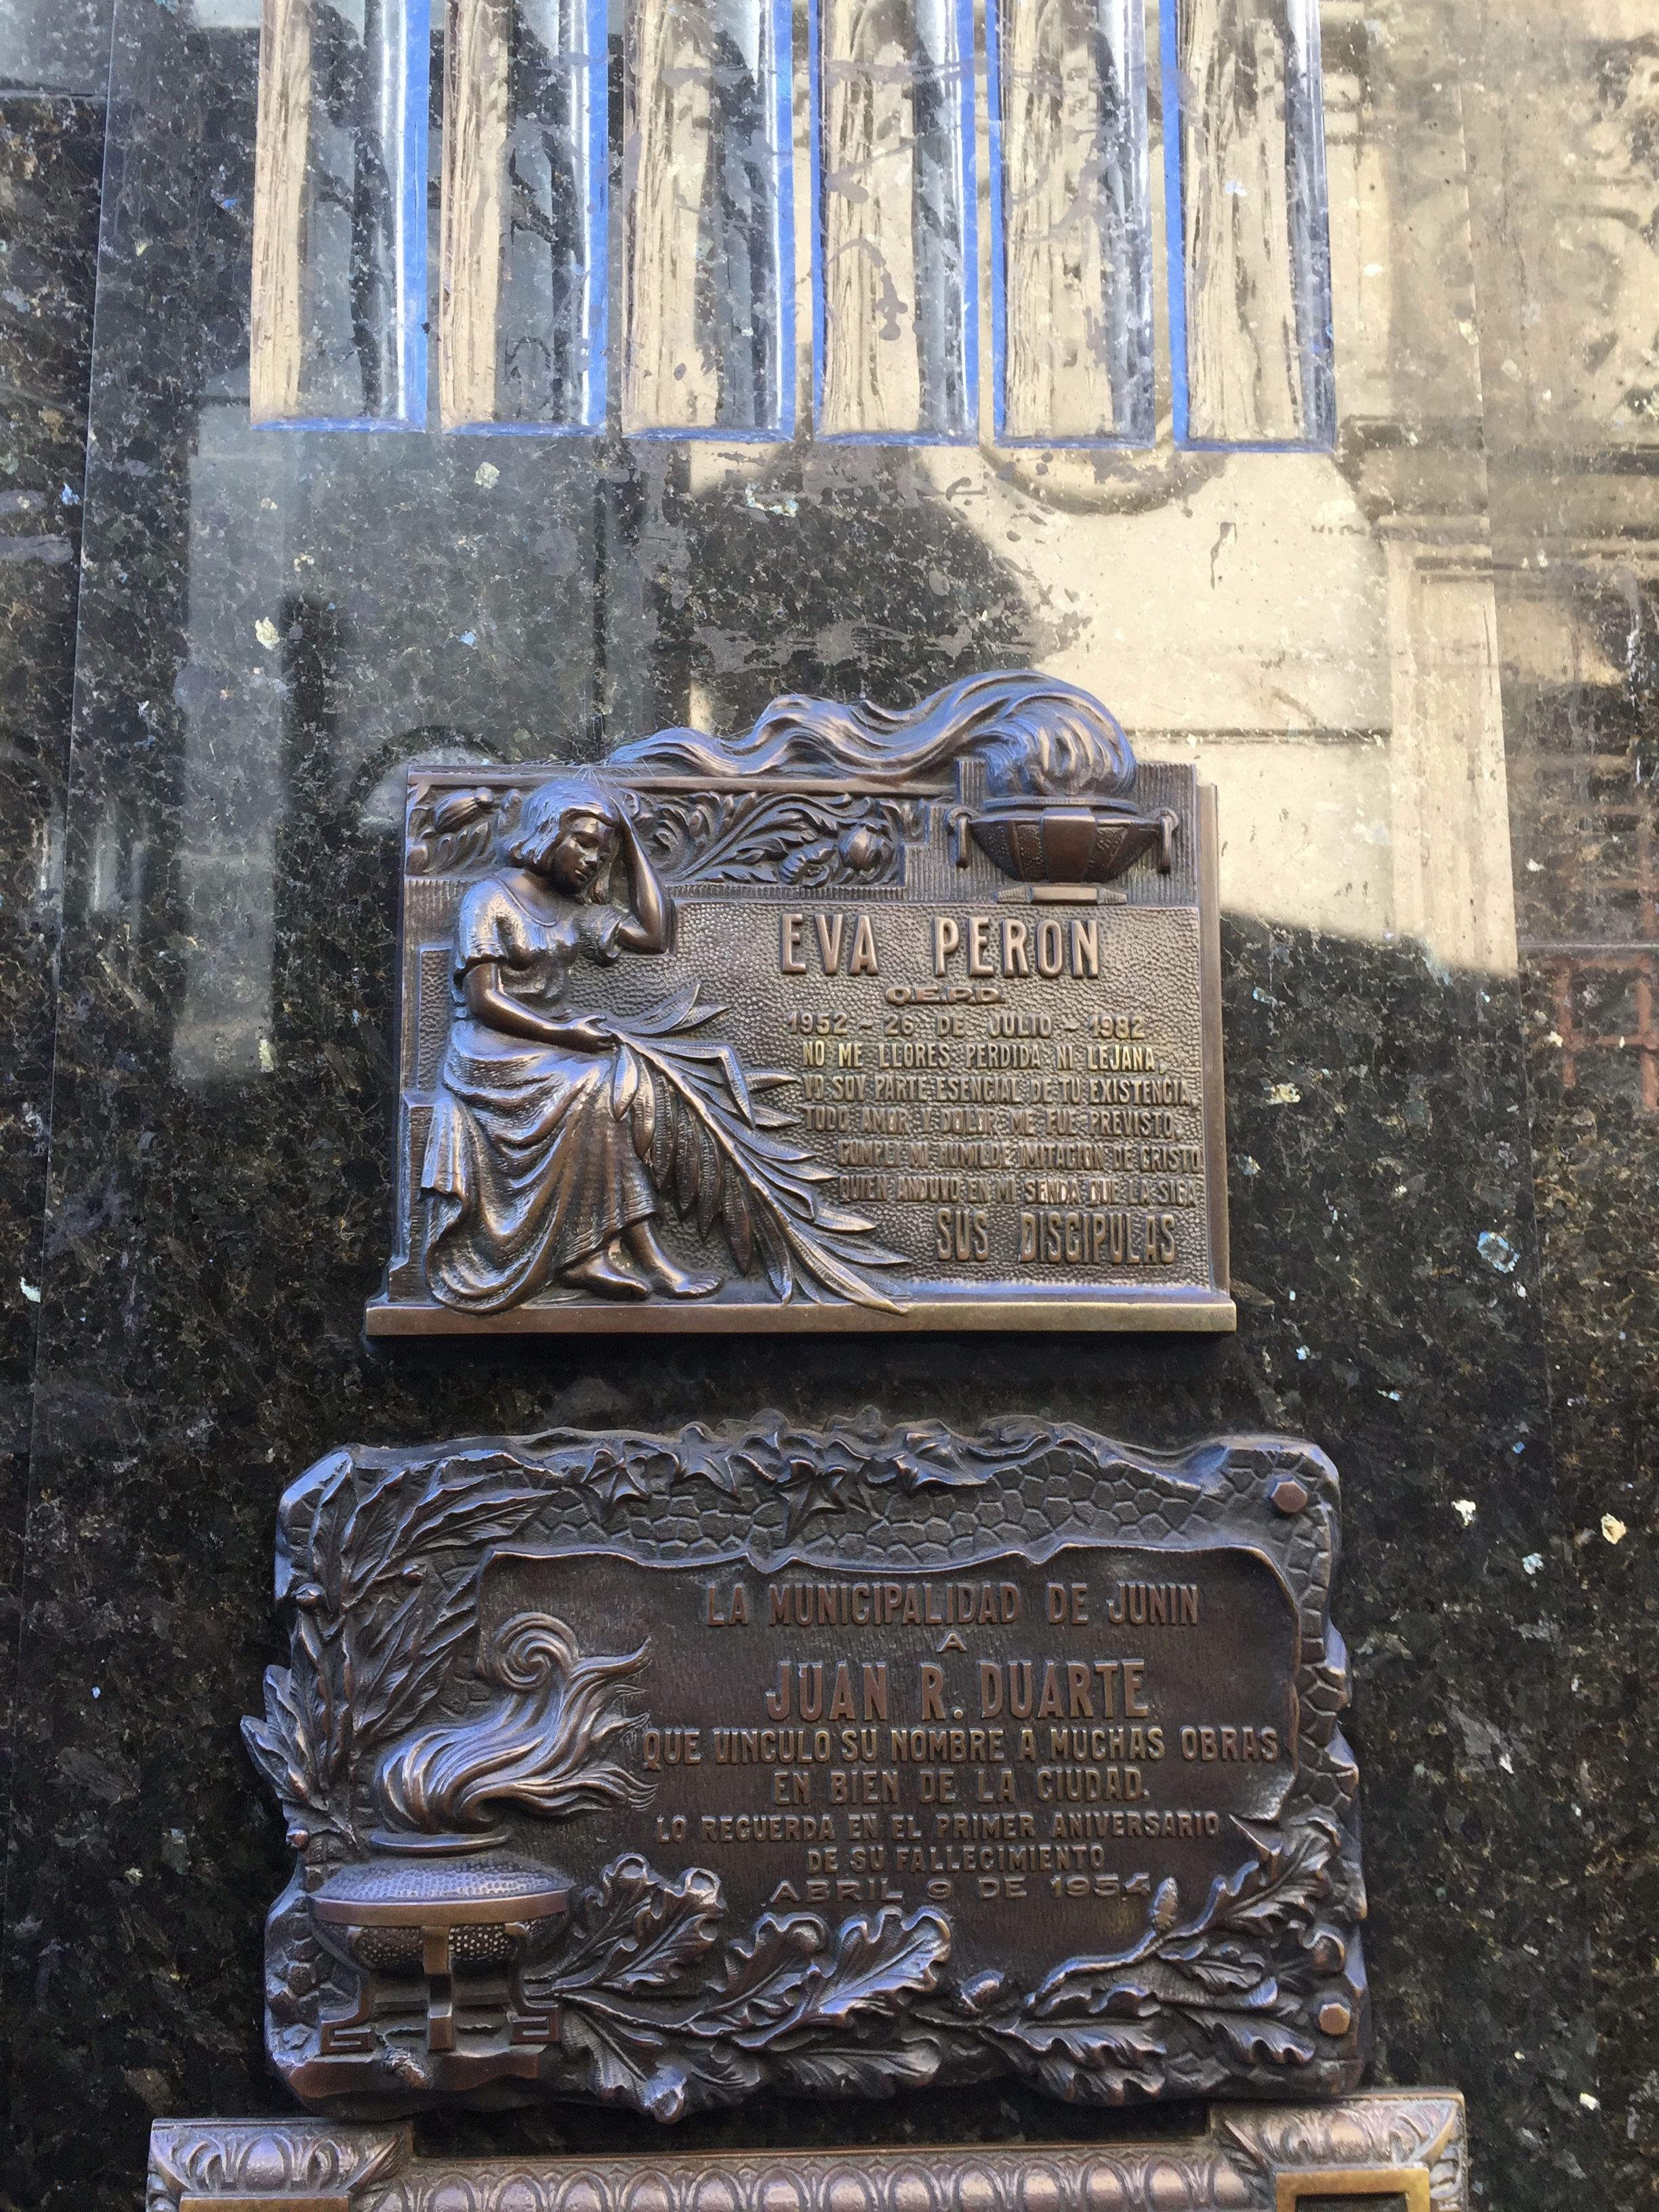 The marker on Eva Peron's tomb in the Recoleta Cemetery in Buenos Aires.